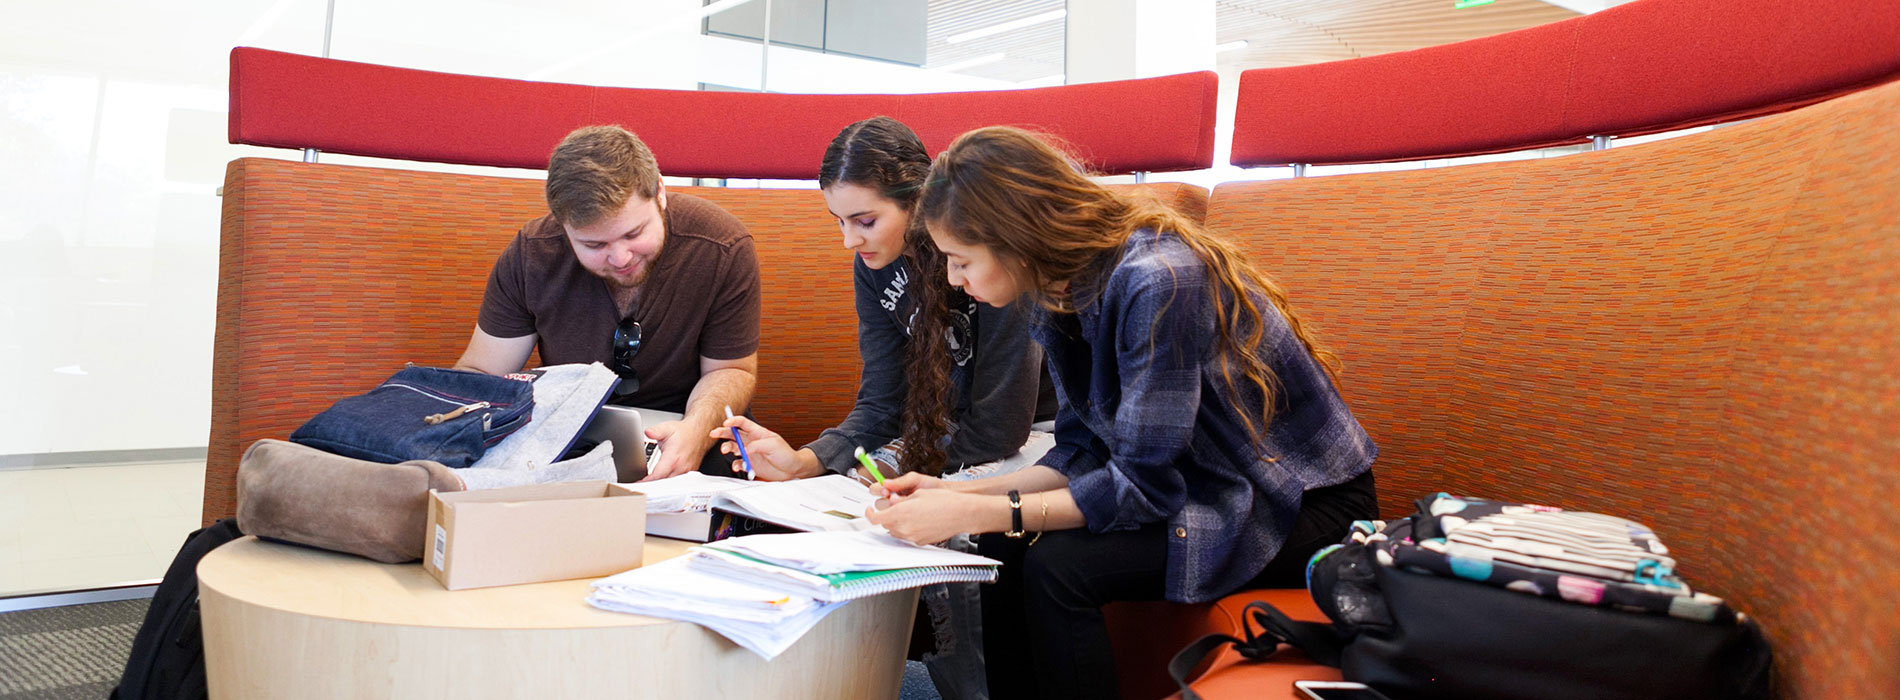 Students study in the Science and Learning Center